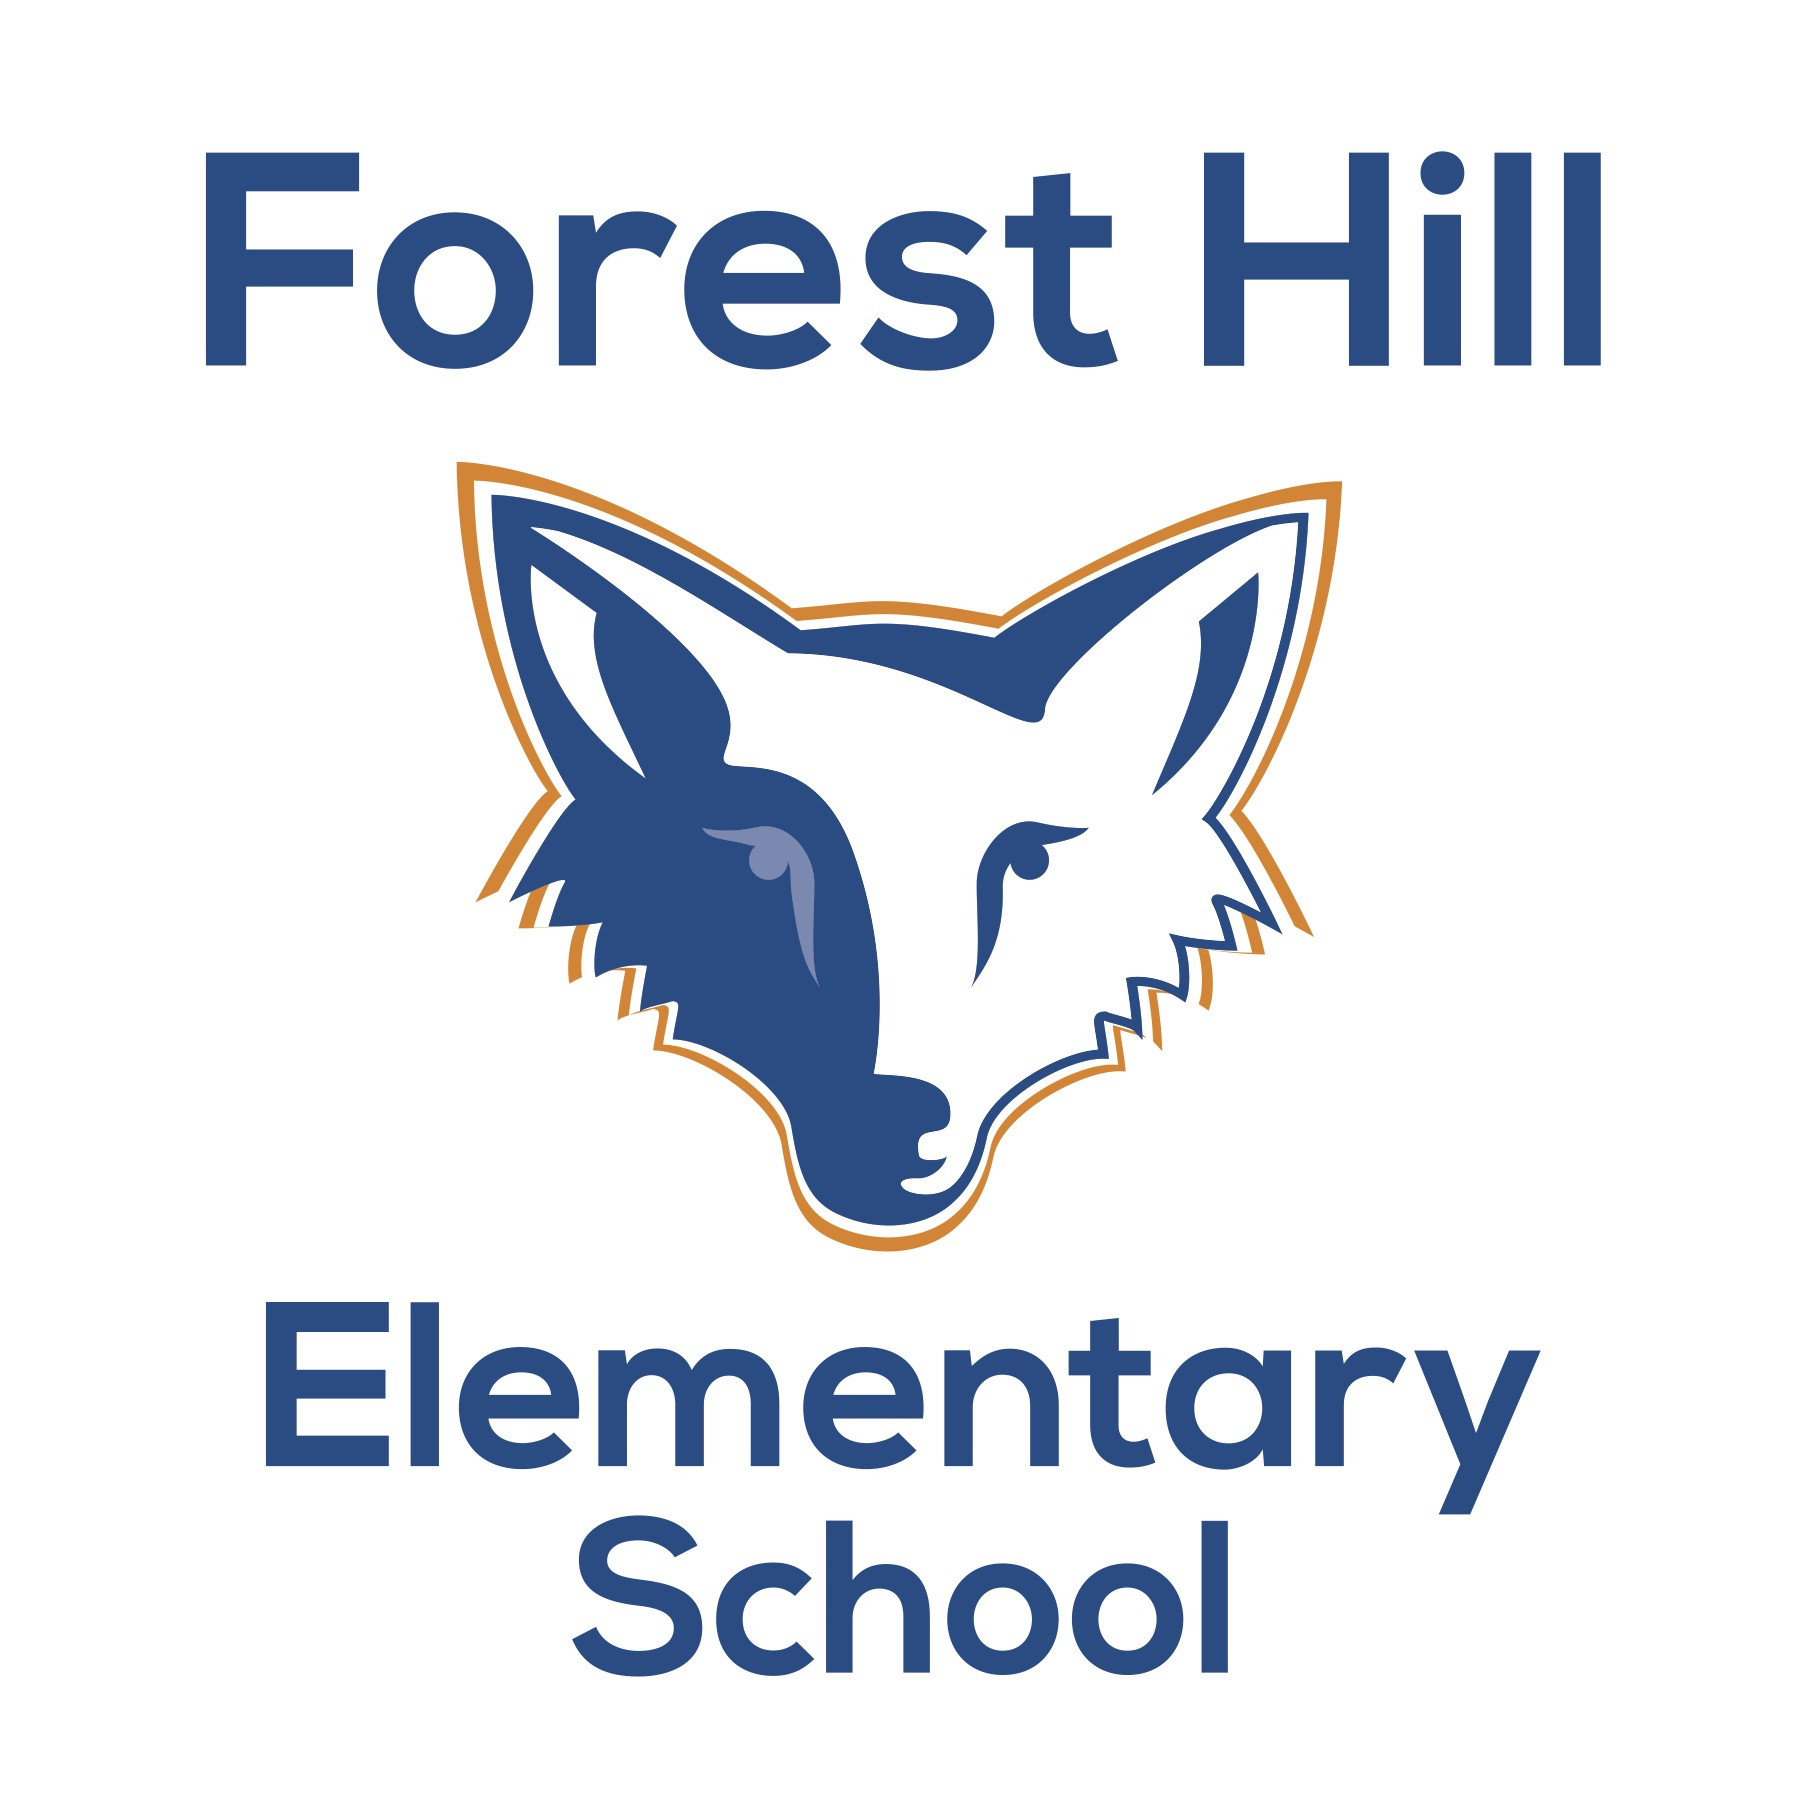 Forest Hill Elementary